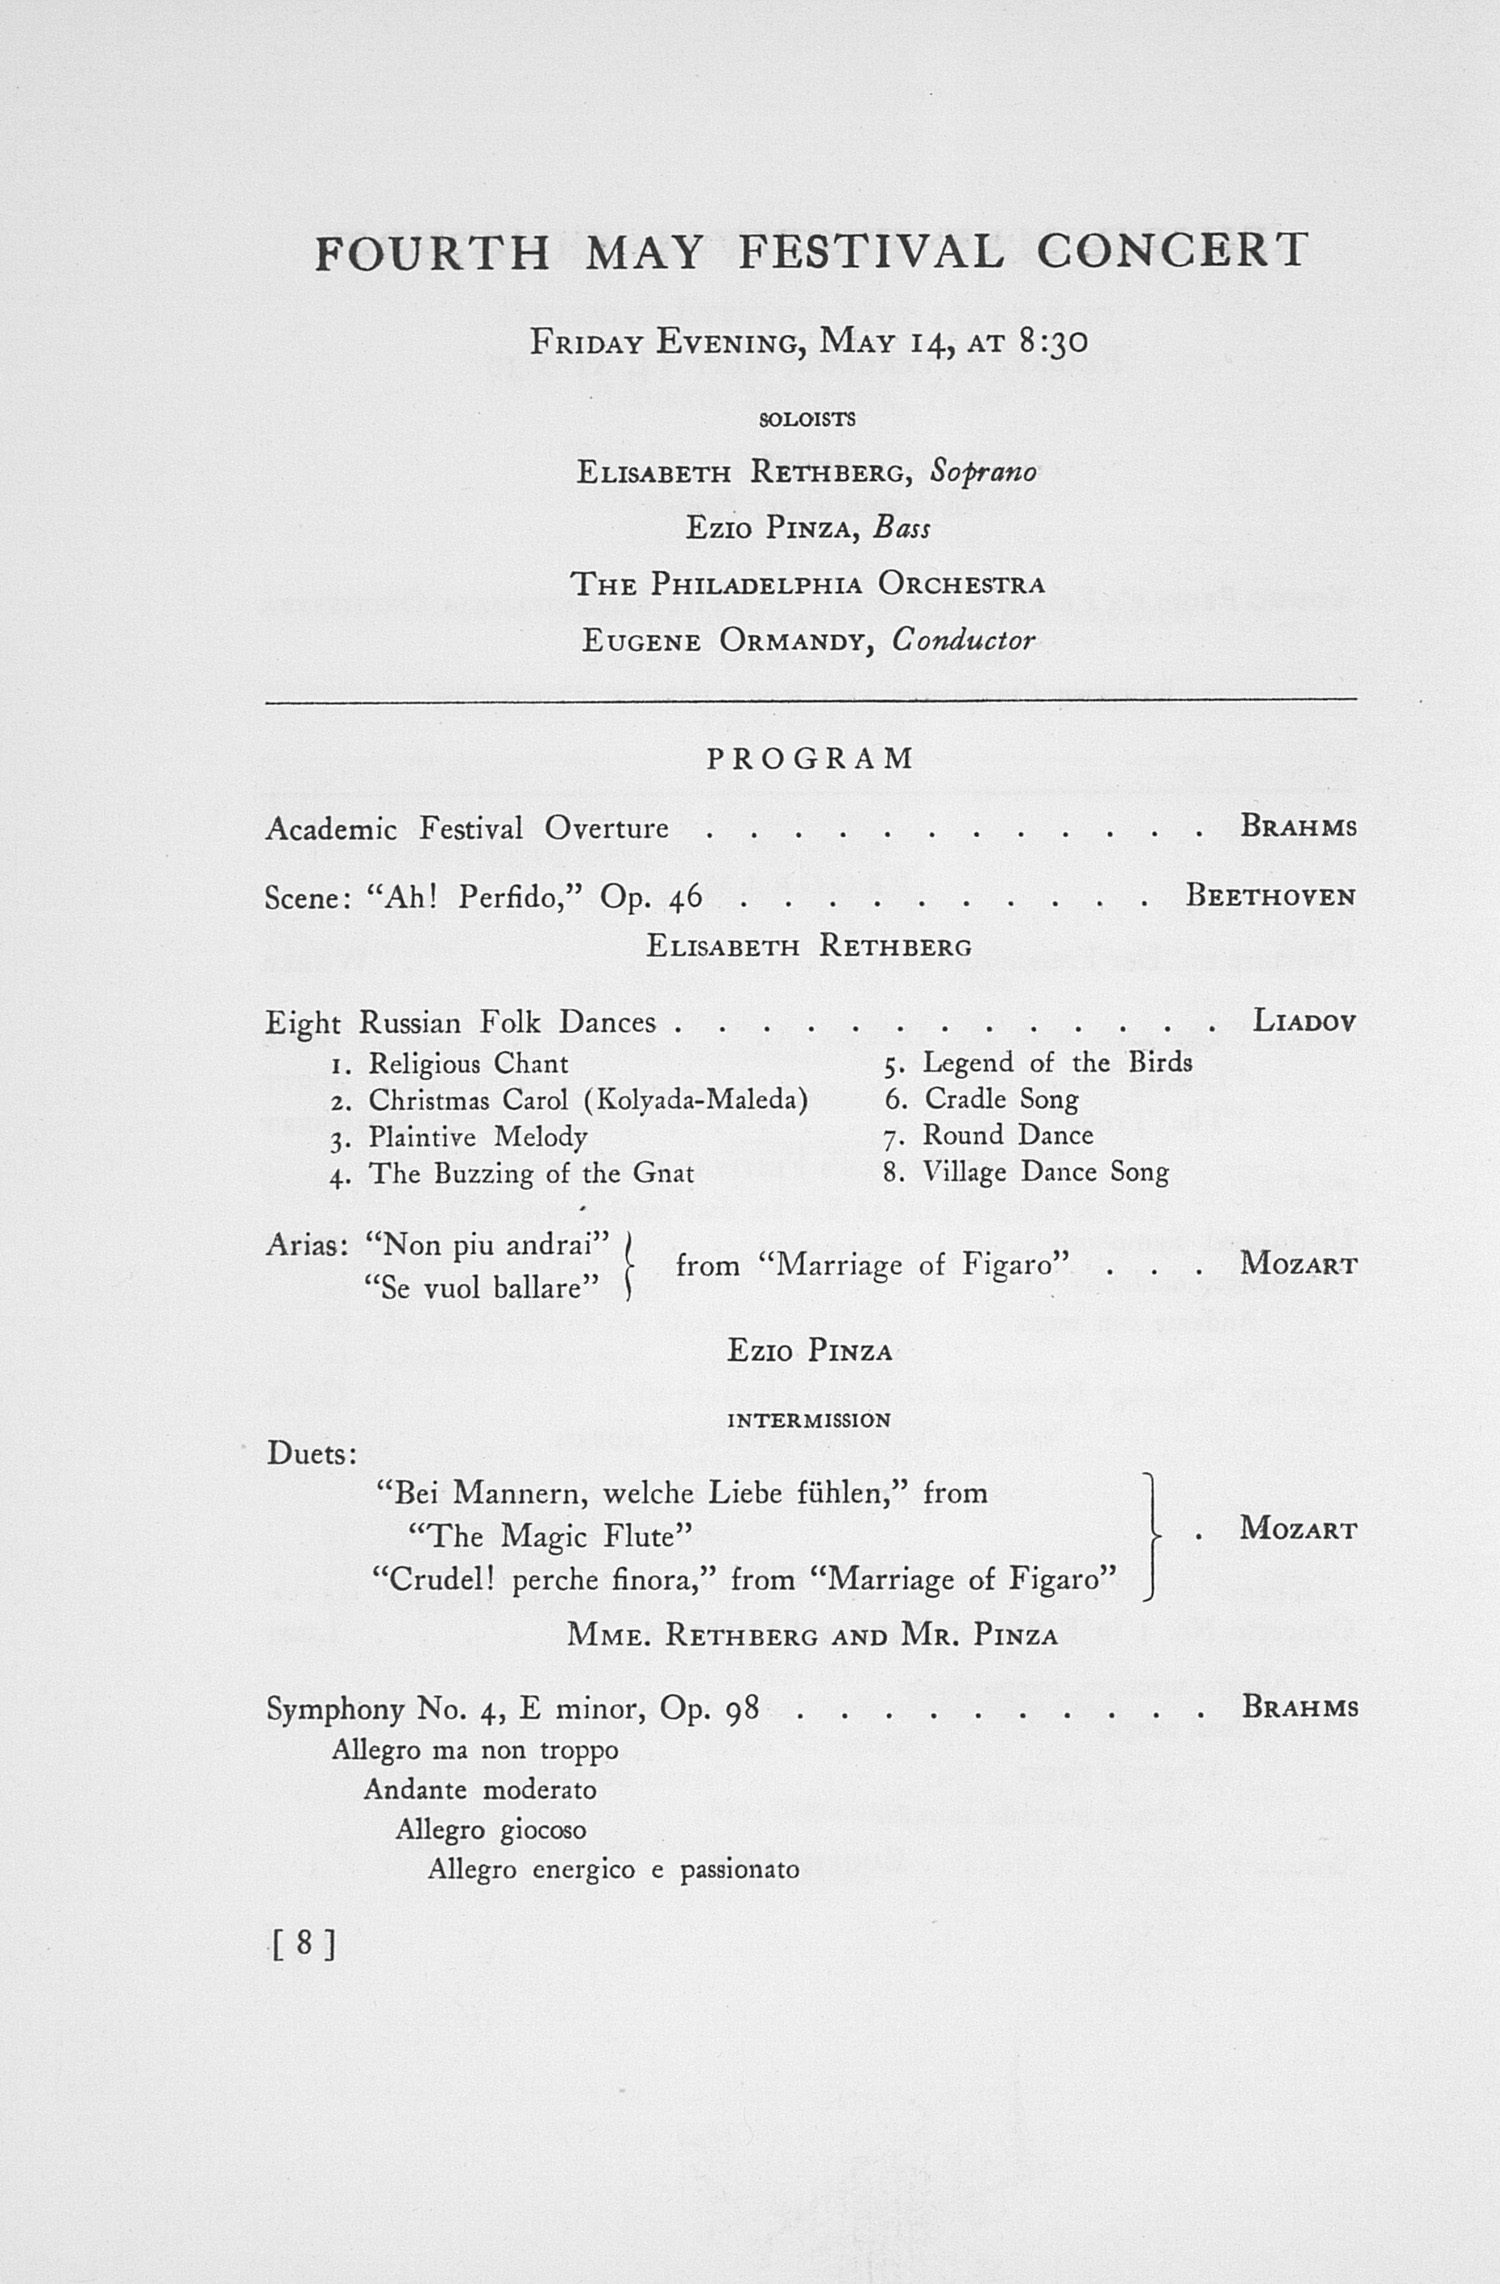 UMS Concert Program, May 12, 13, 14, And 15, 1937: The Forty-fourth Annual May Festival -- The Philadelphia Orchestra image